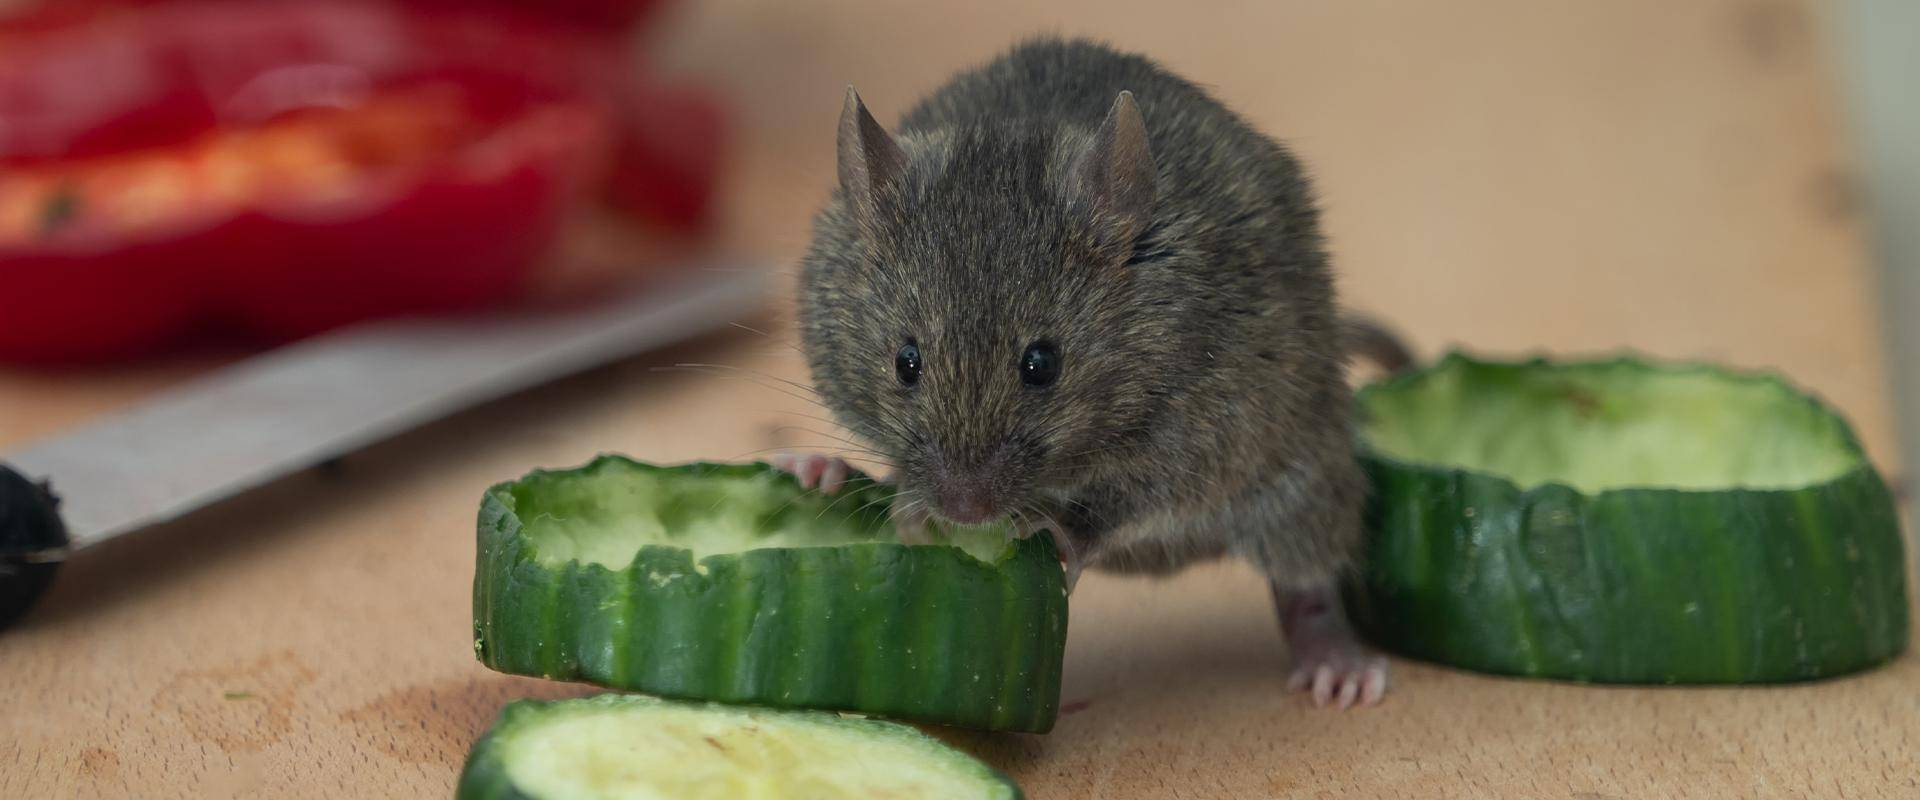 mouse eating cucumbers